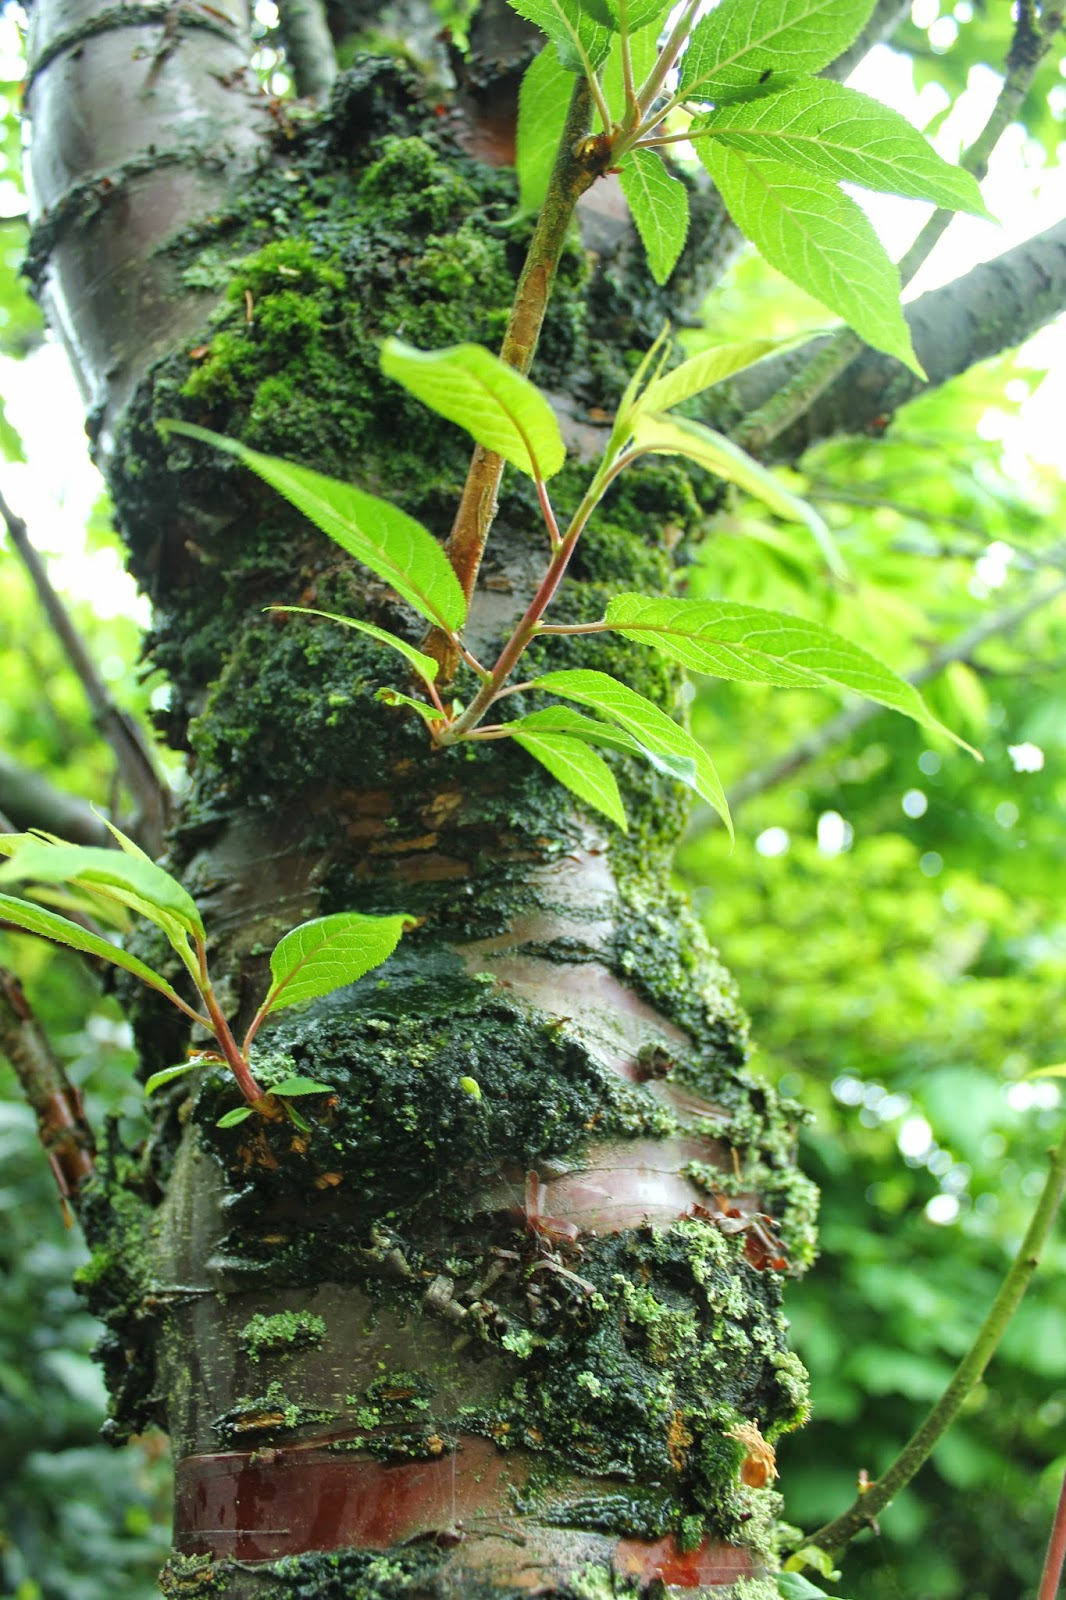 Prunus serrula var. tibetica aka birch-bark or Tibetan cherry  in a forest garden